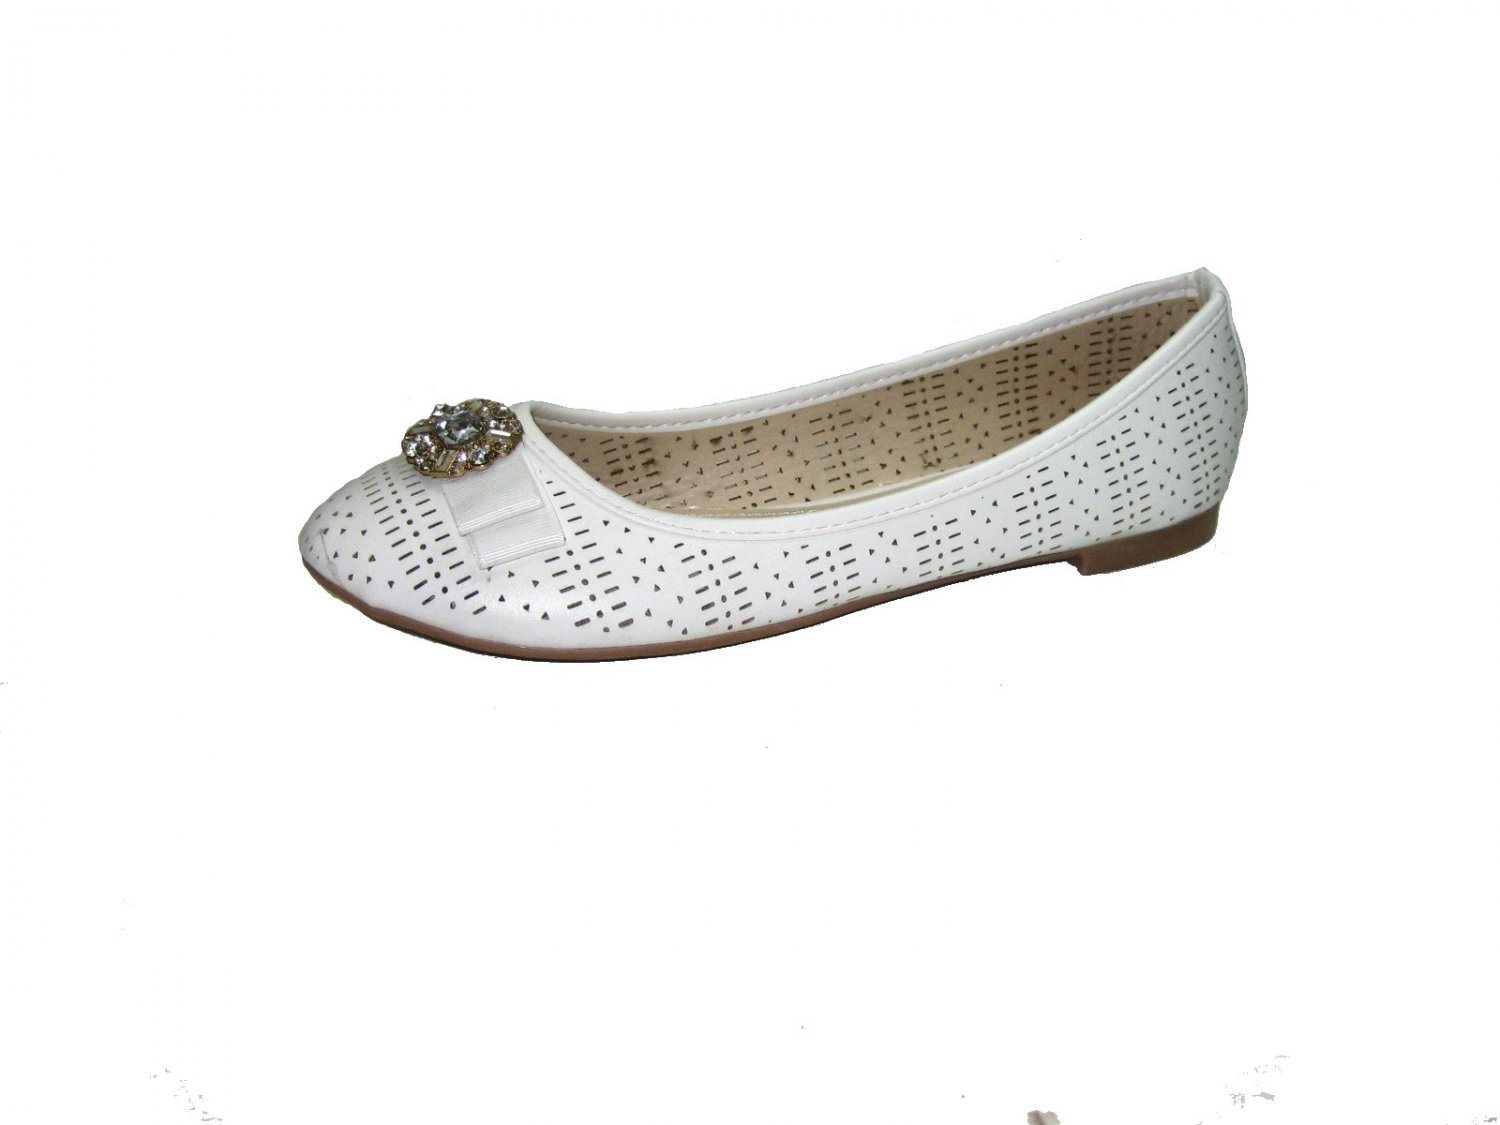 Top Moda SB-25 ballerina flats slip on pumps rhinestone bejeweled bow toe shoes white size 8.5